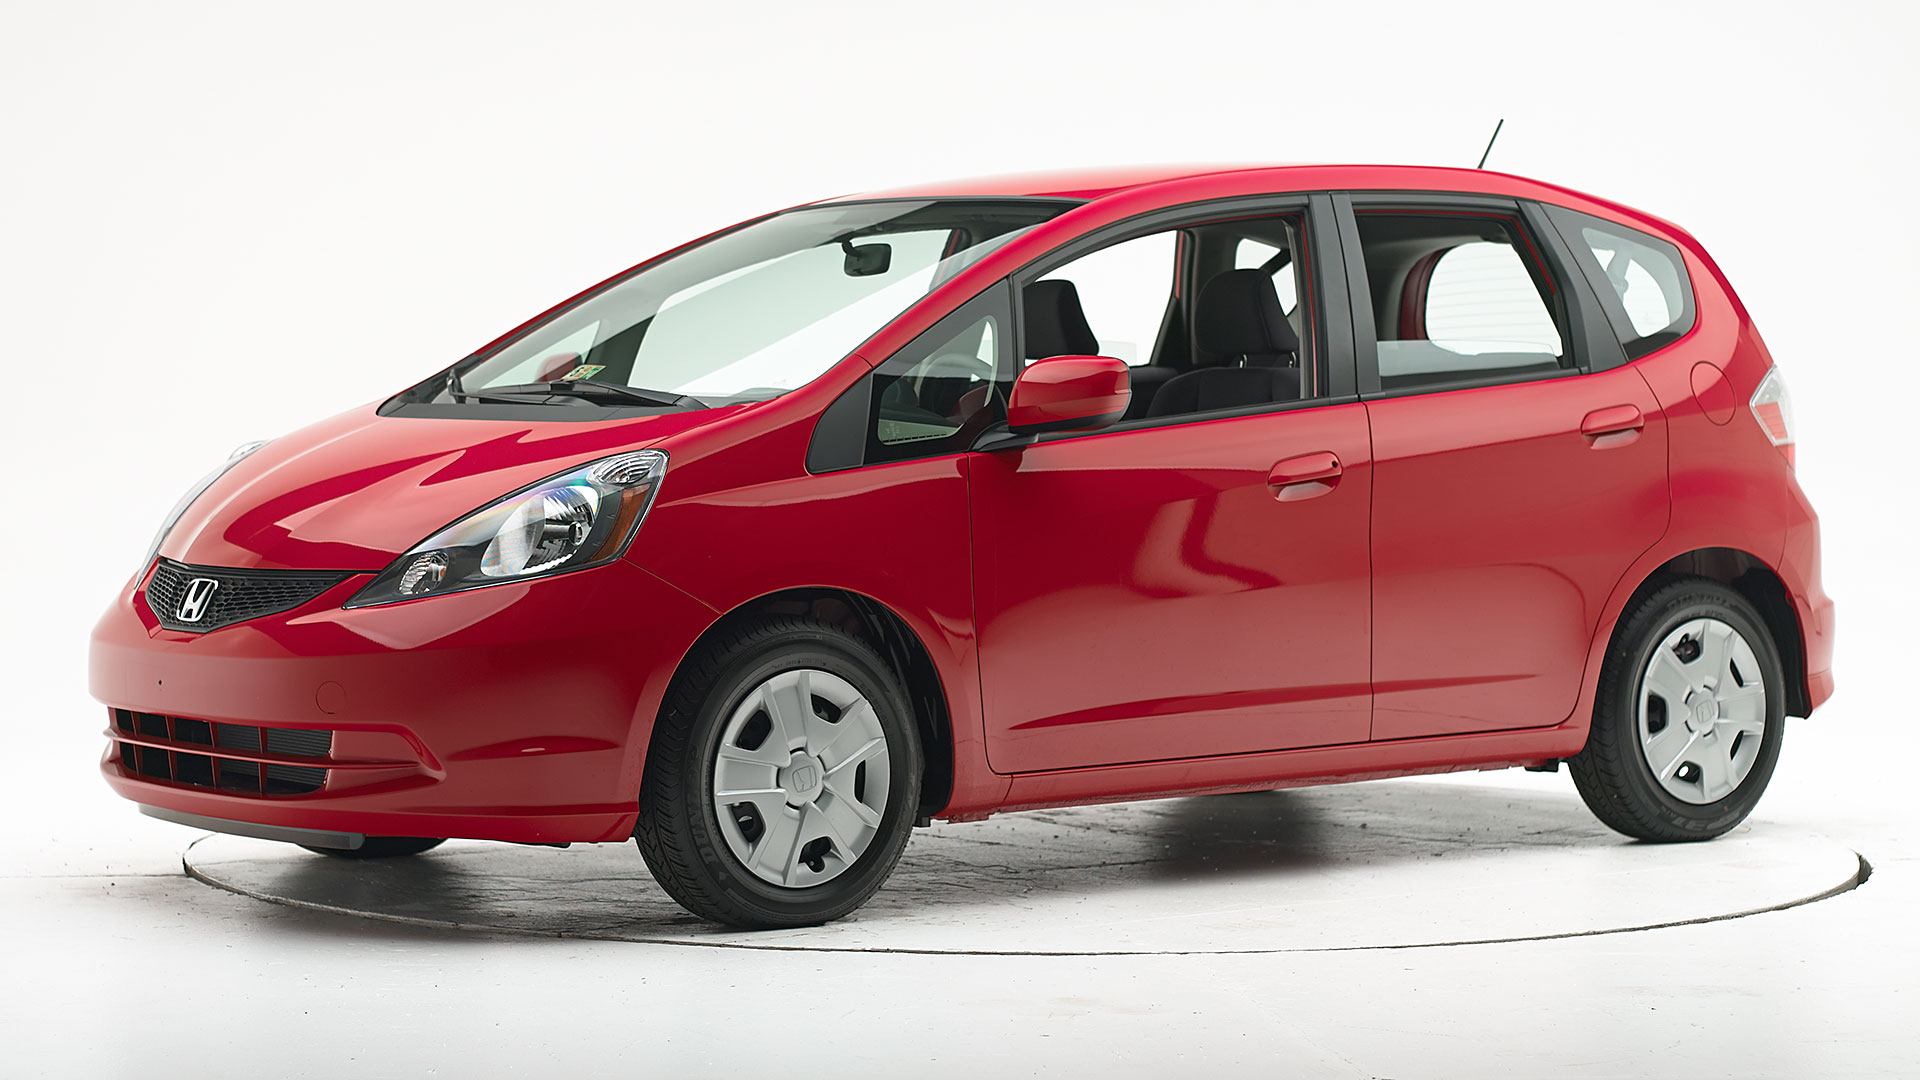 2013 Honda Fit 4-door wagon